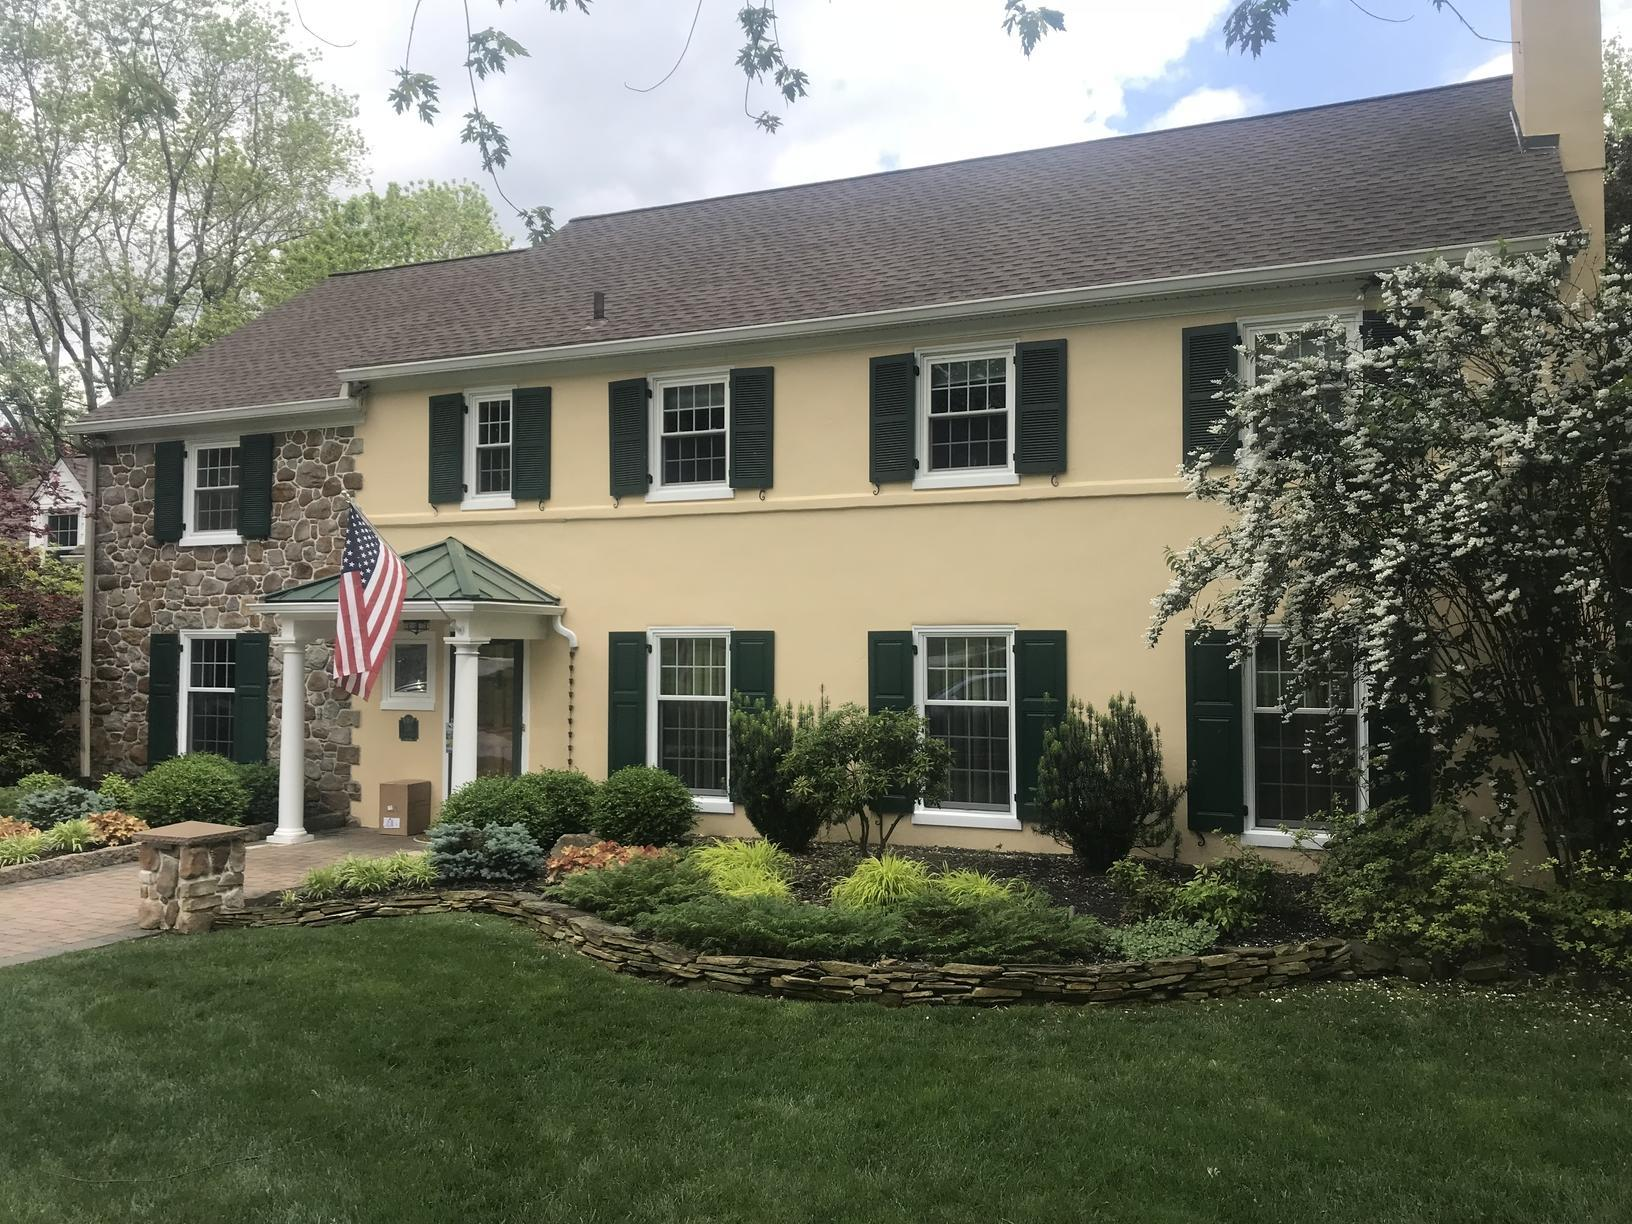 Stucco House Gets Painted with our Ceramic Coating in Newtown Square, PA - After Photo